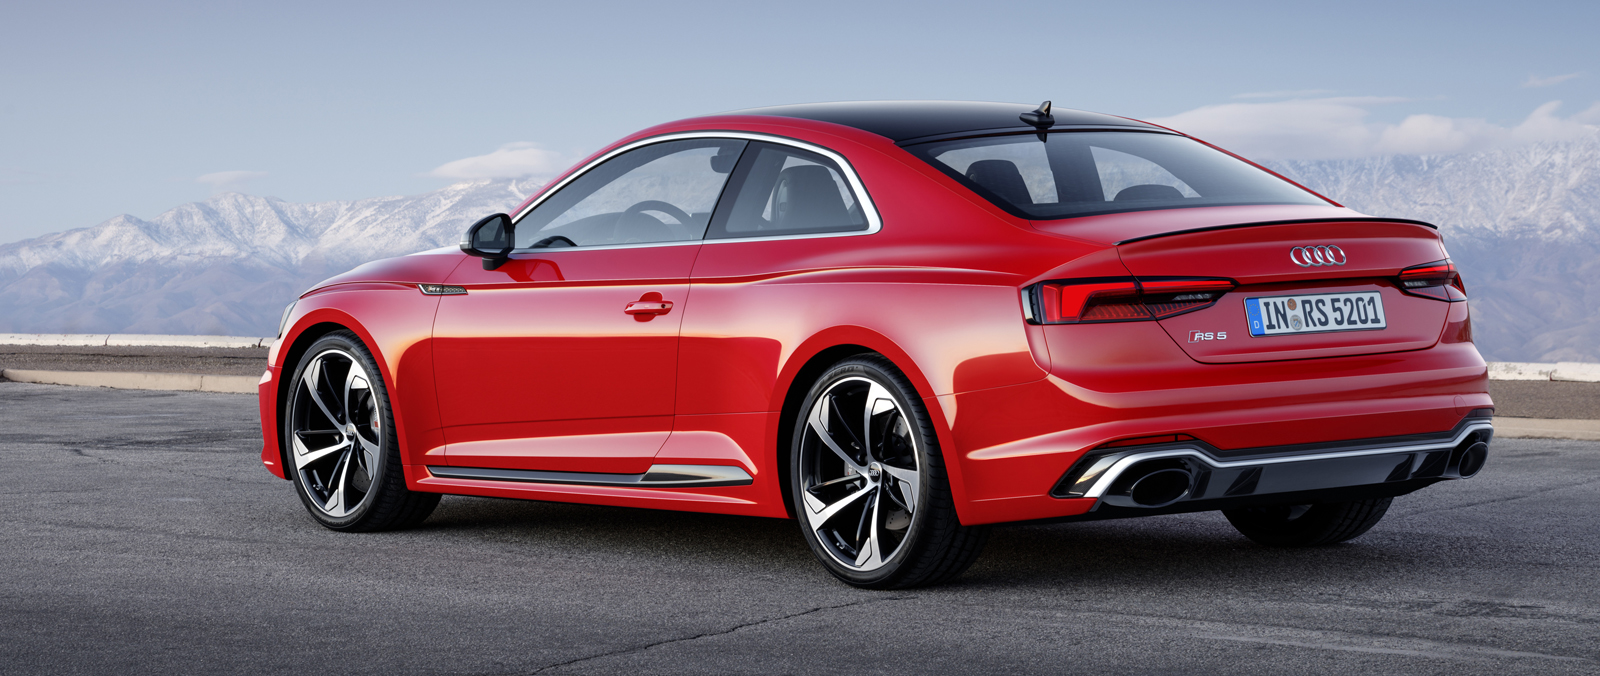 Audi RS 5 Coupe is krachtiger en sneller